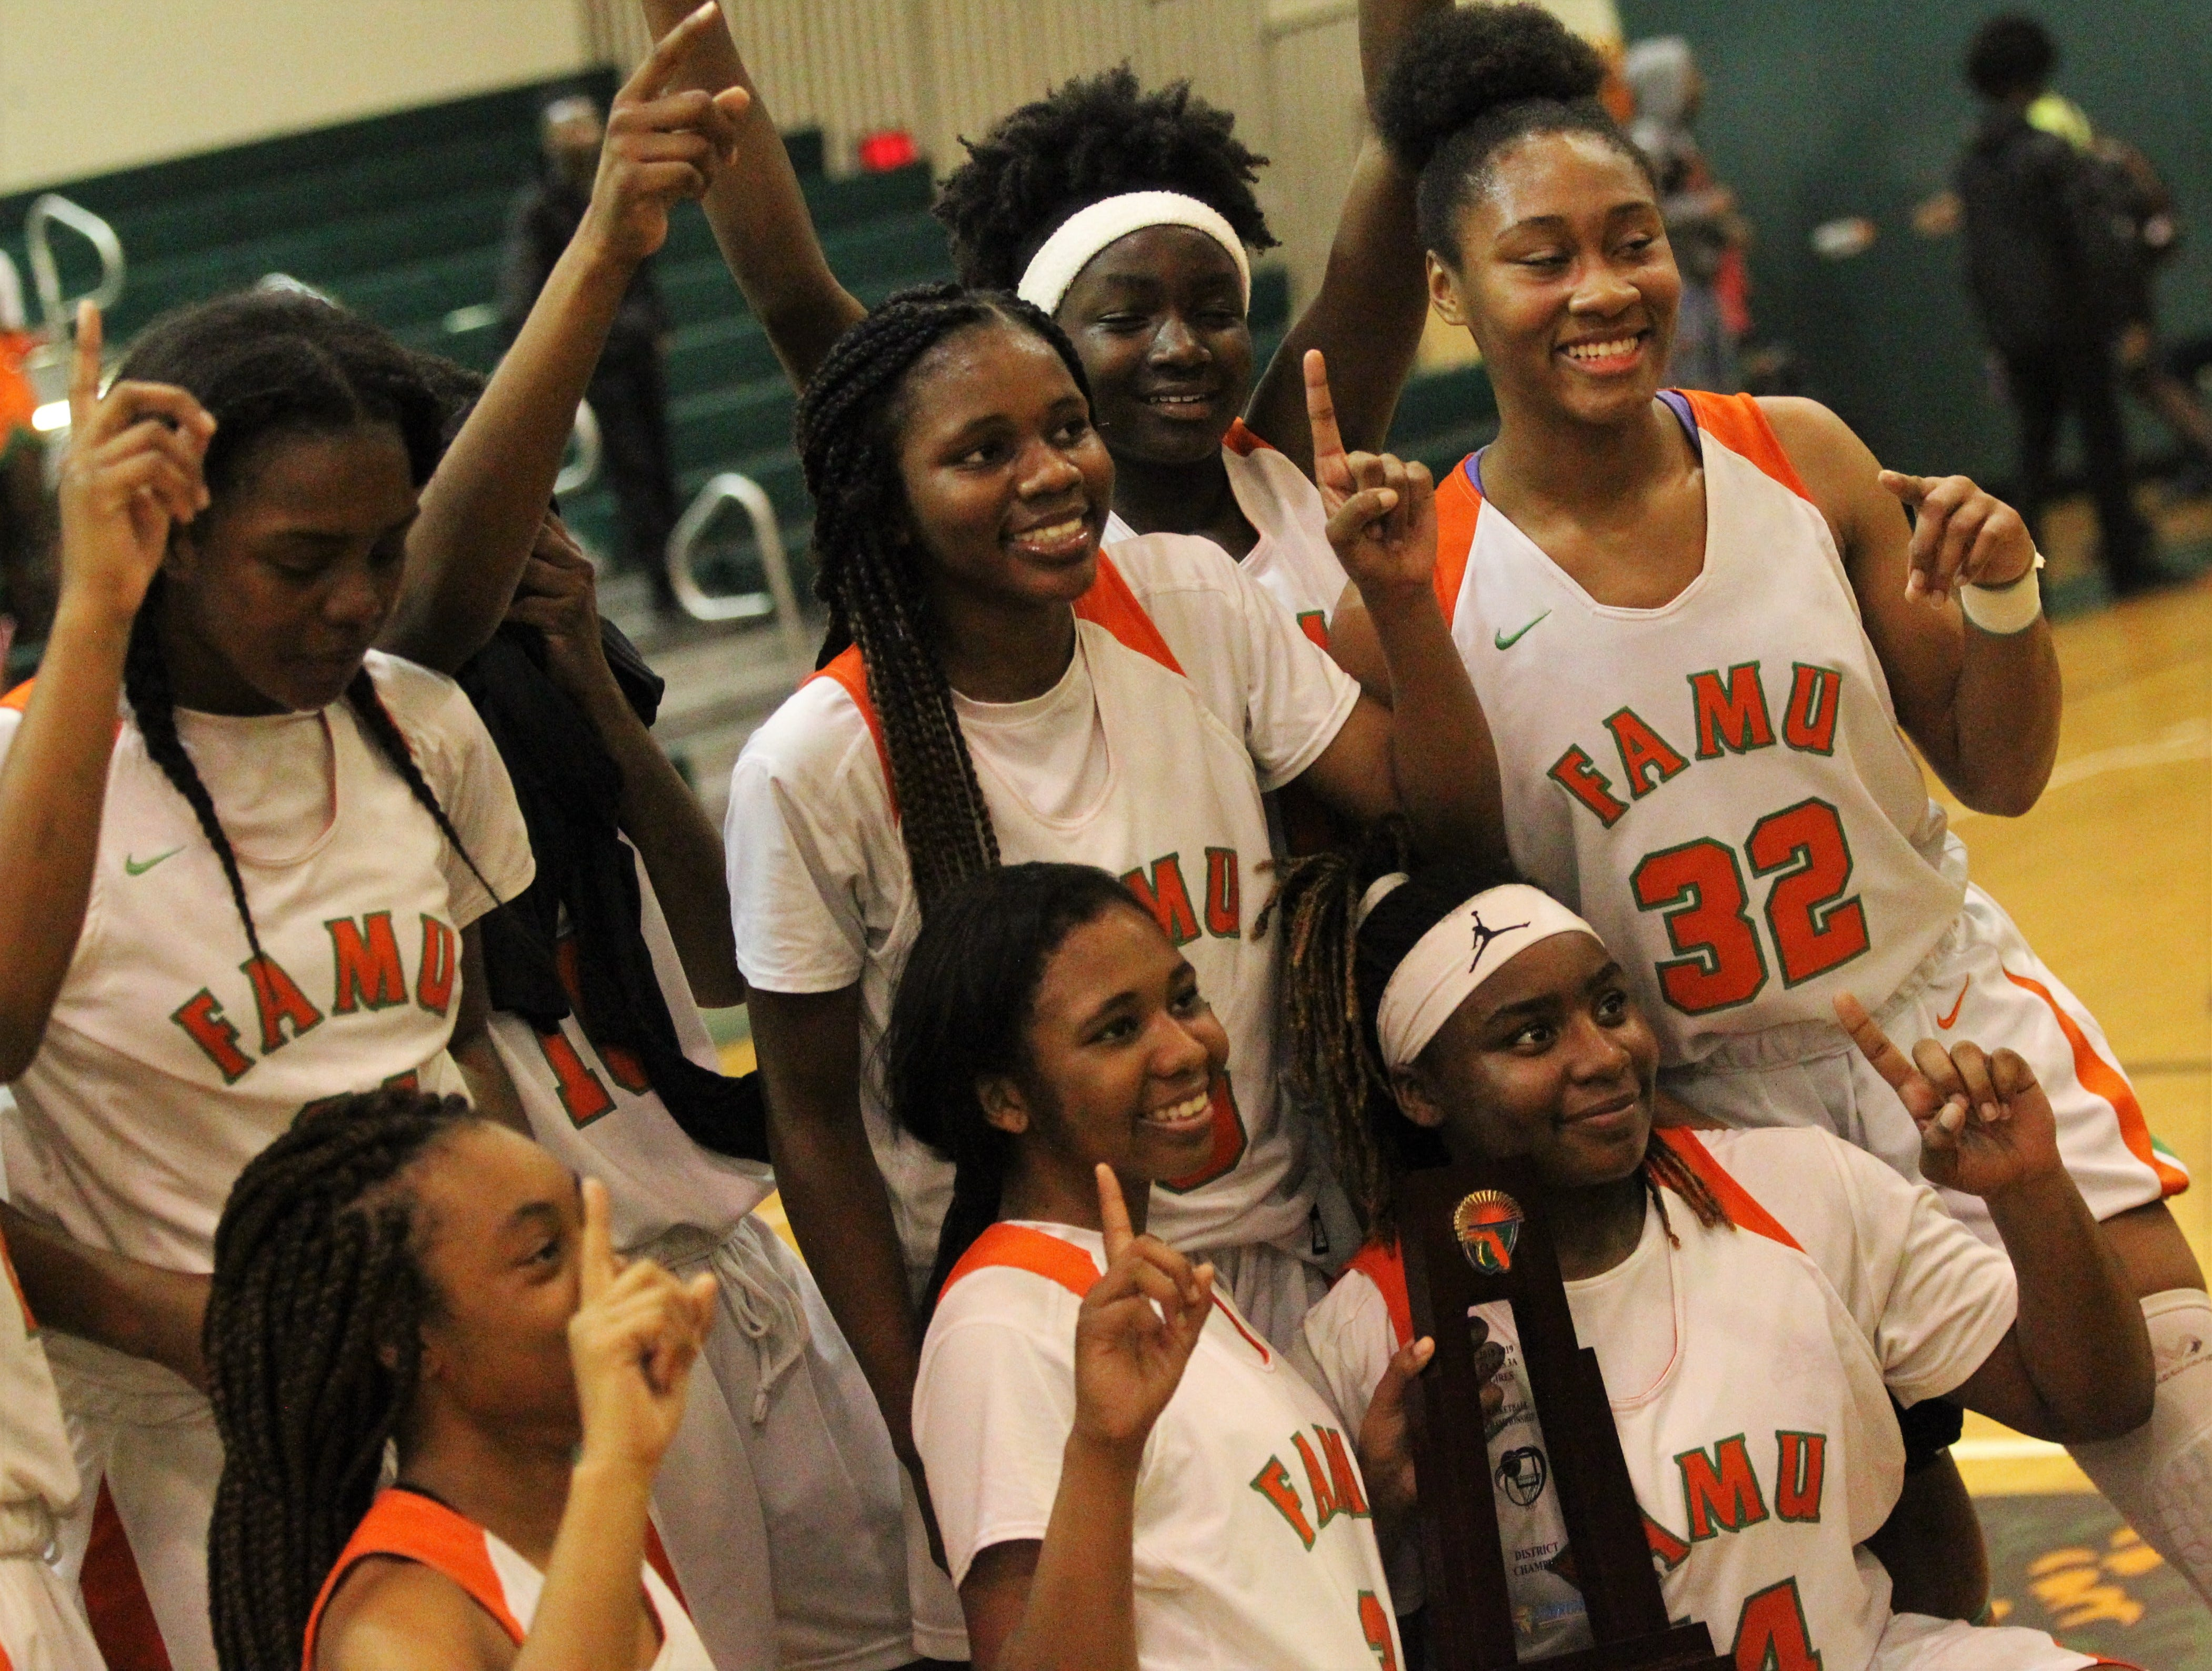 FAMU DRS' girls basketball team celebrates beating NFC 59-41 for a District 1-3A title on Jan. 7, 2019.